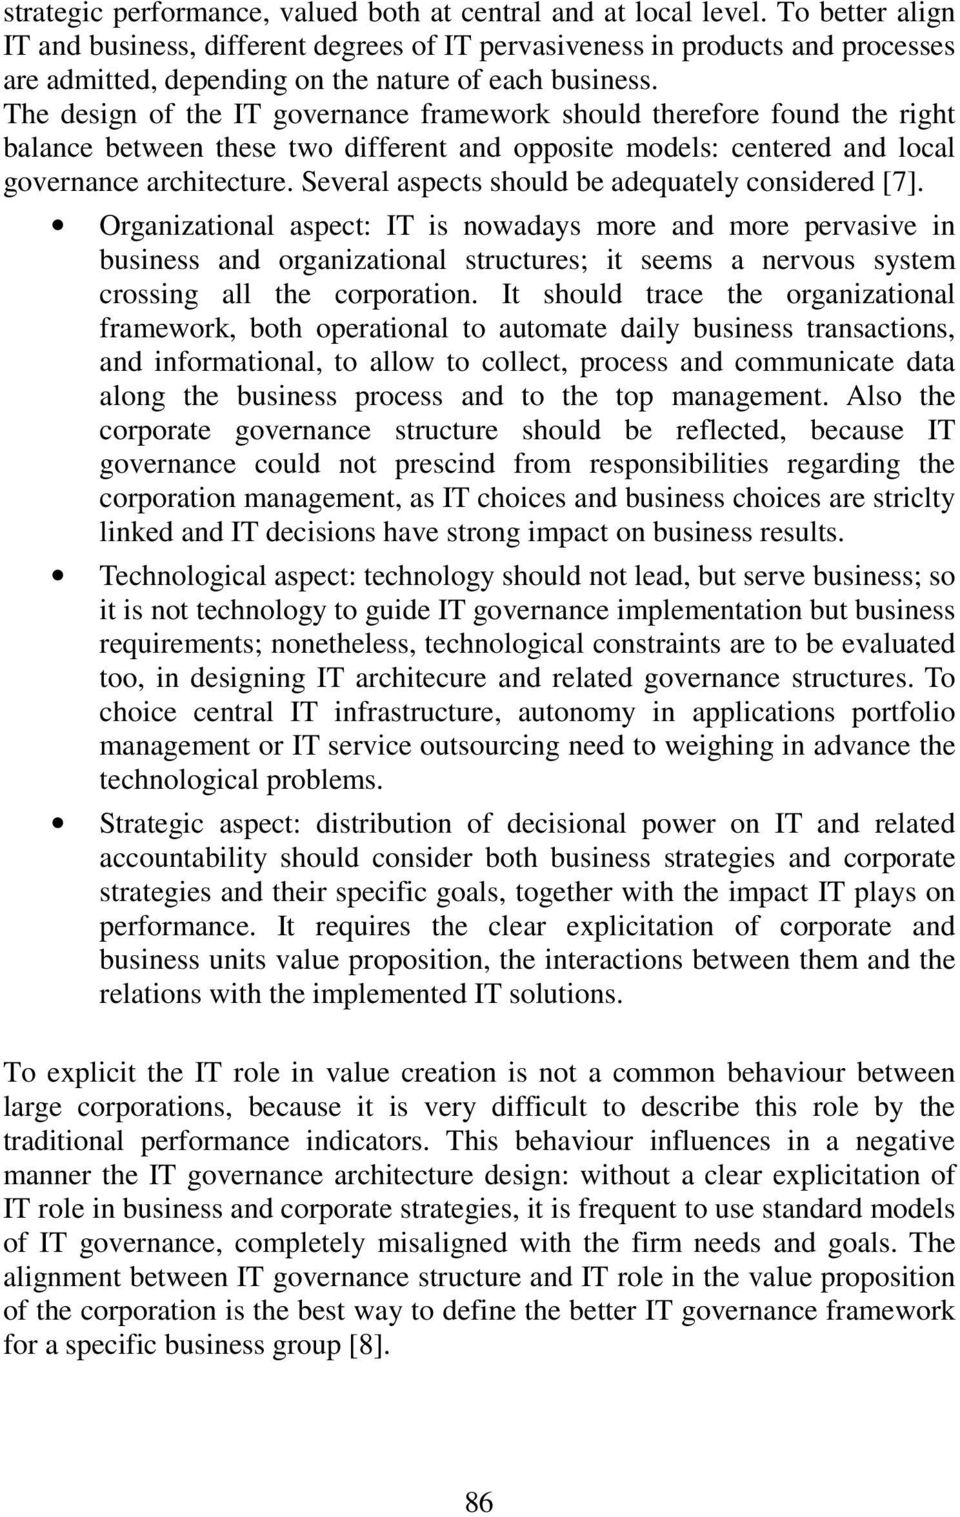 The design of the IT governance framework should therefore found the right balance between these two different and opposite models: centered and local governance architecture.